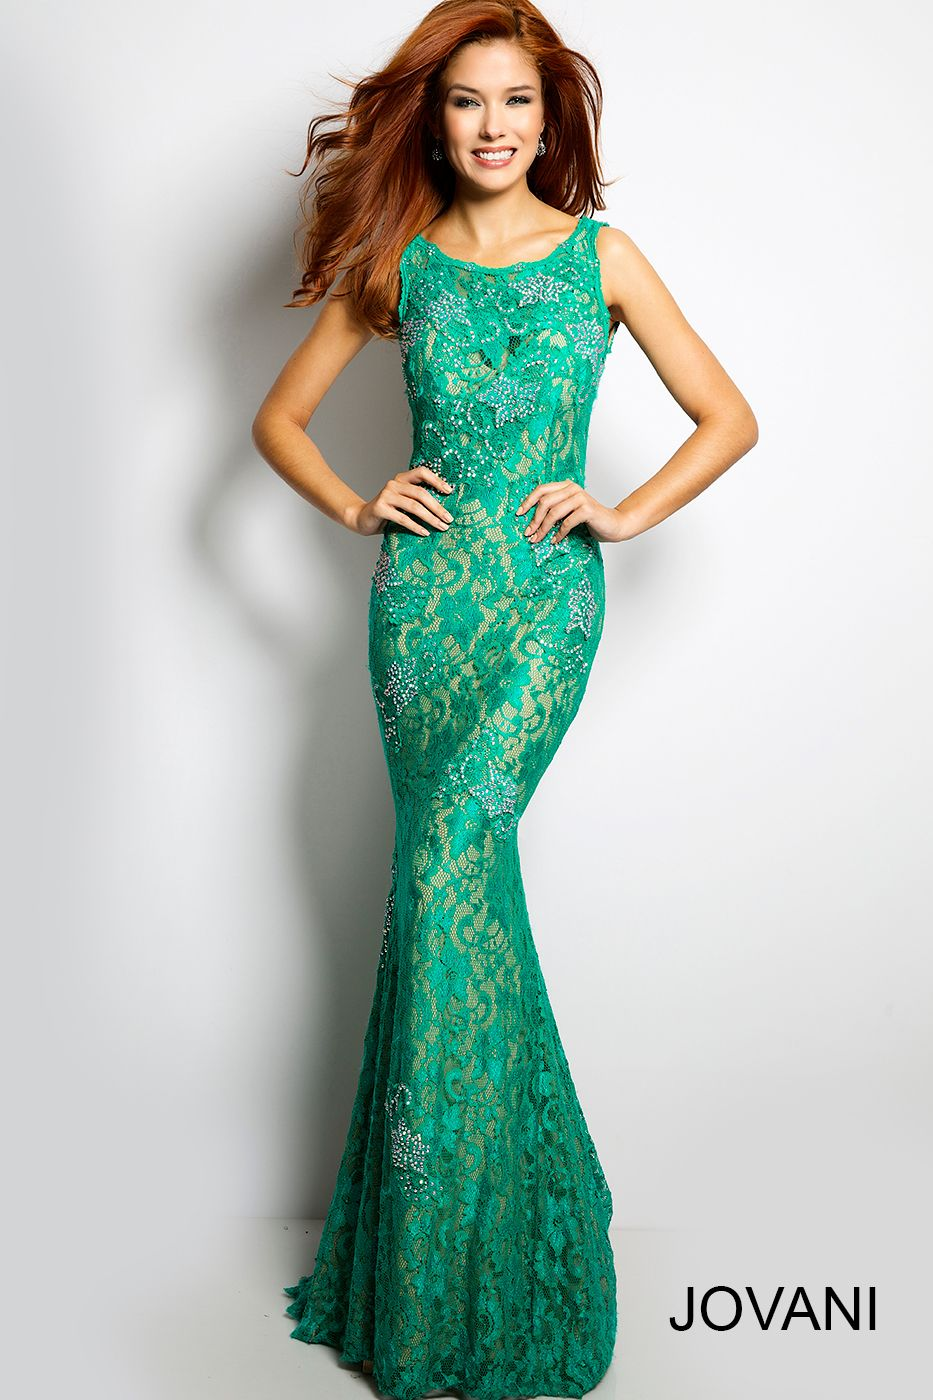 Jovani Lace Sleeveless Prom Dress #21789 in Green | One Night Only ...